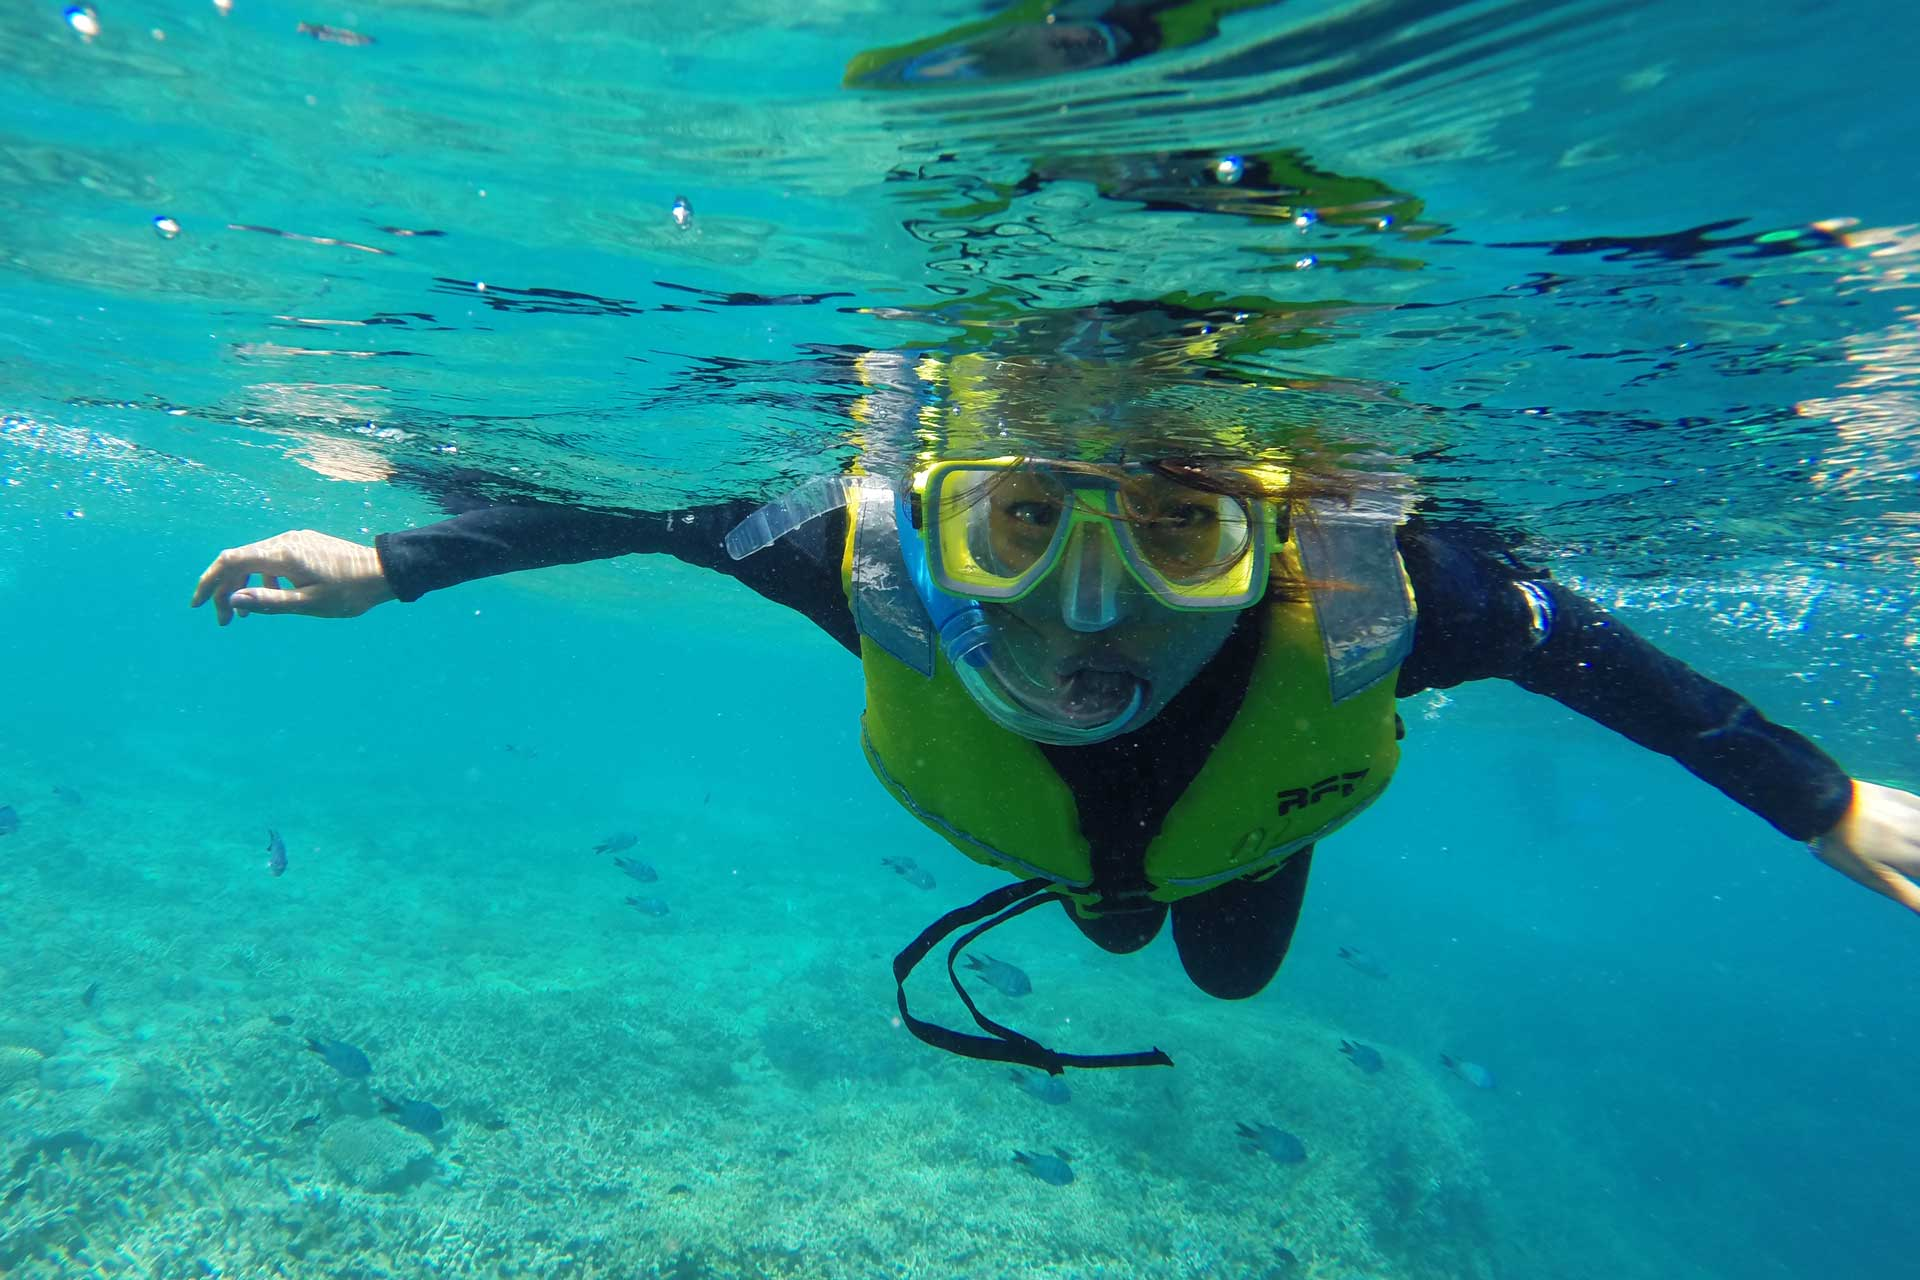 Exploring an underwater world at the Great Barrier Reef